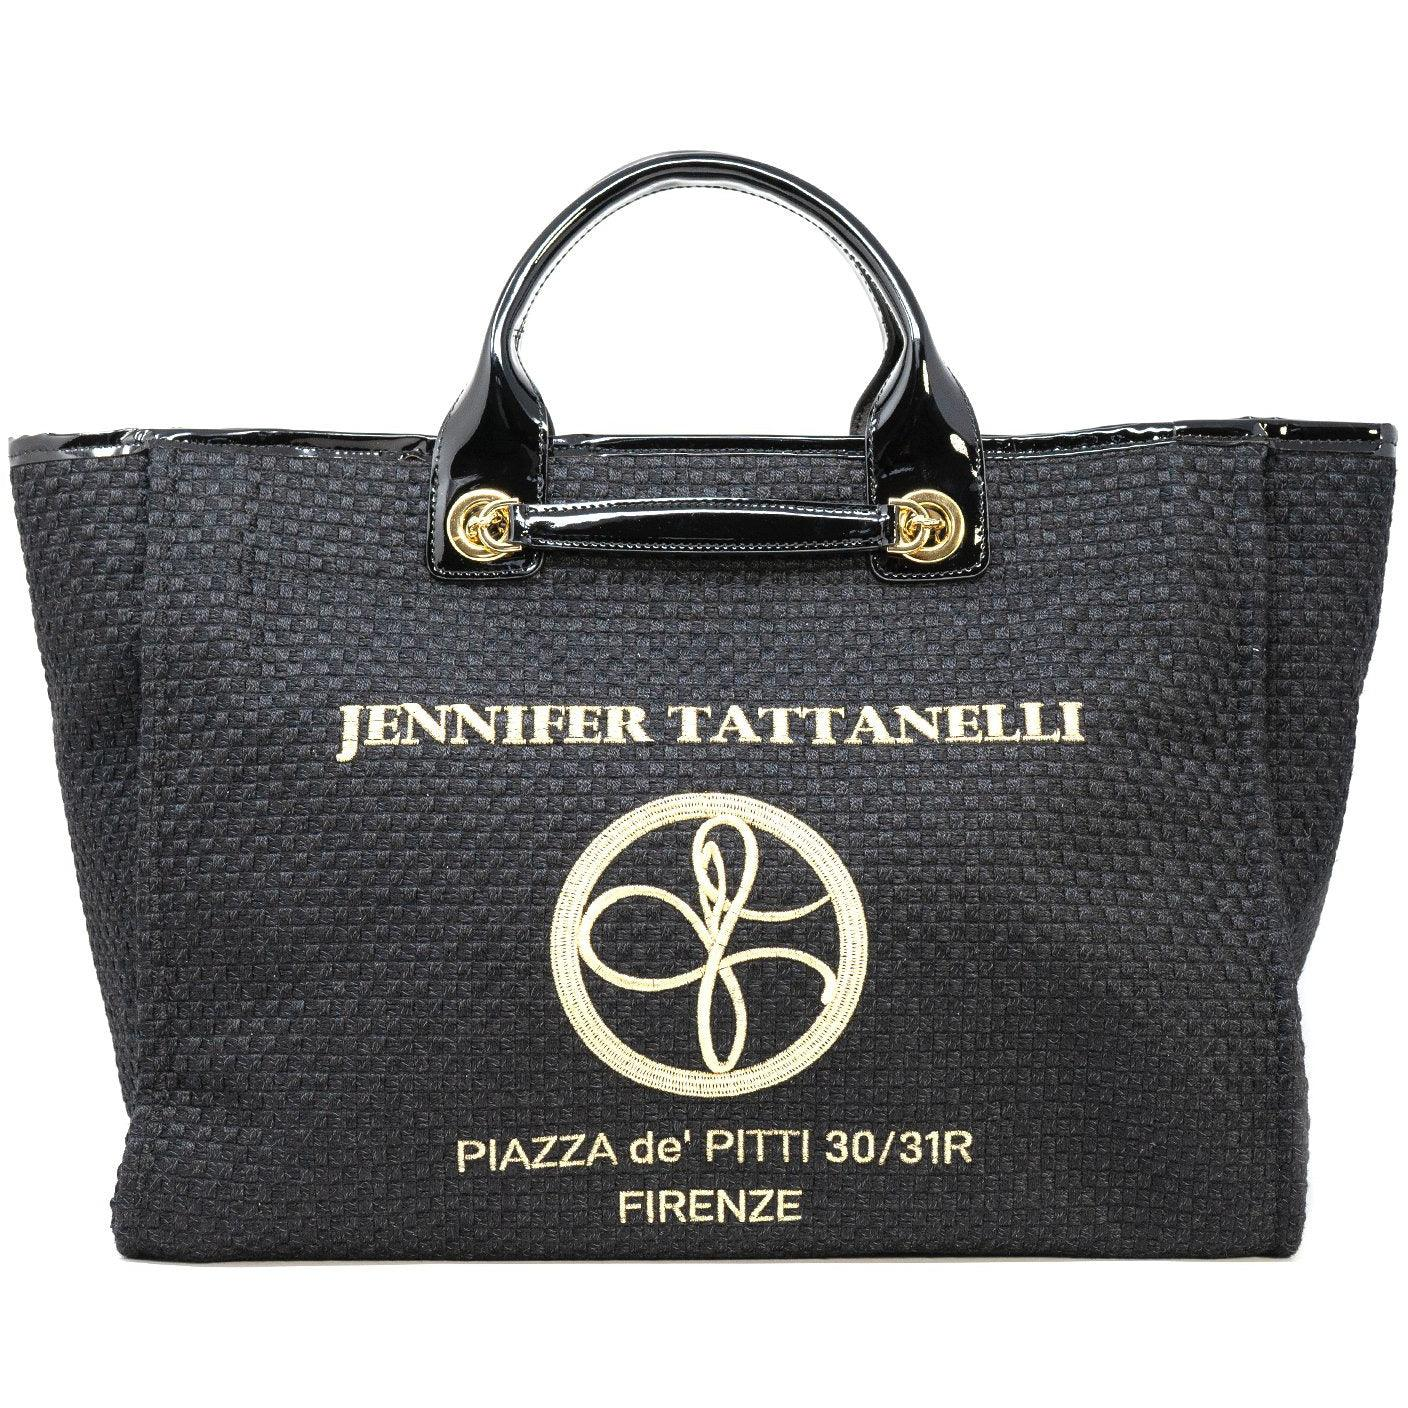 The Hamptons Large Shopping Bag in Black Patent Leather